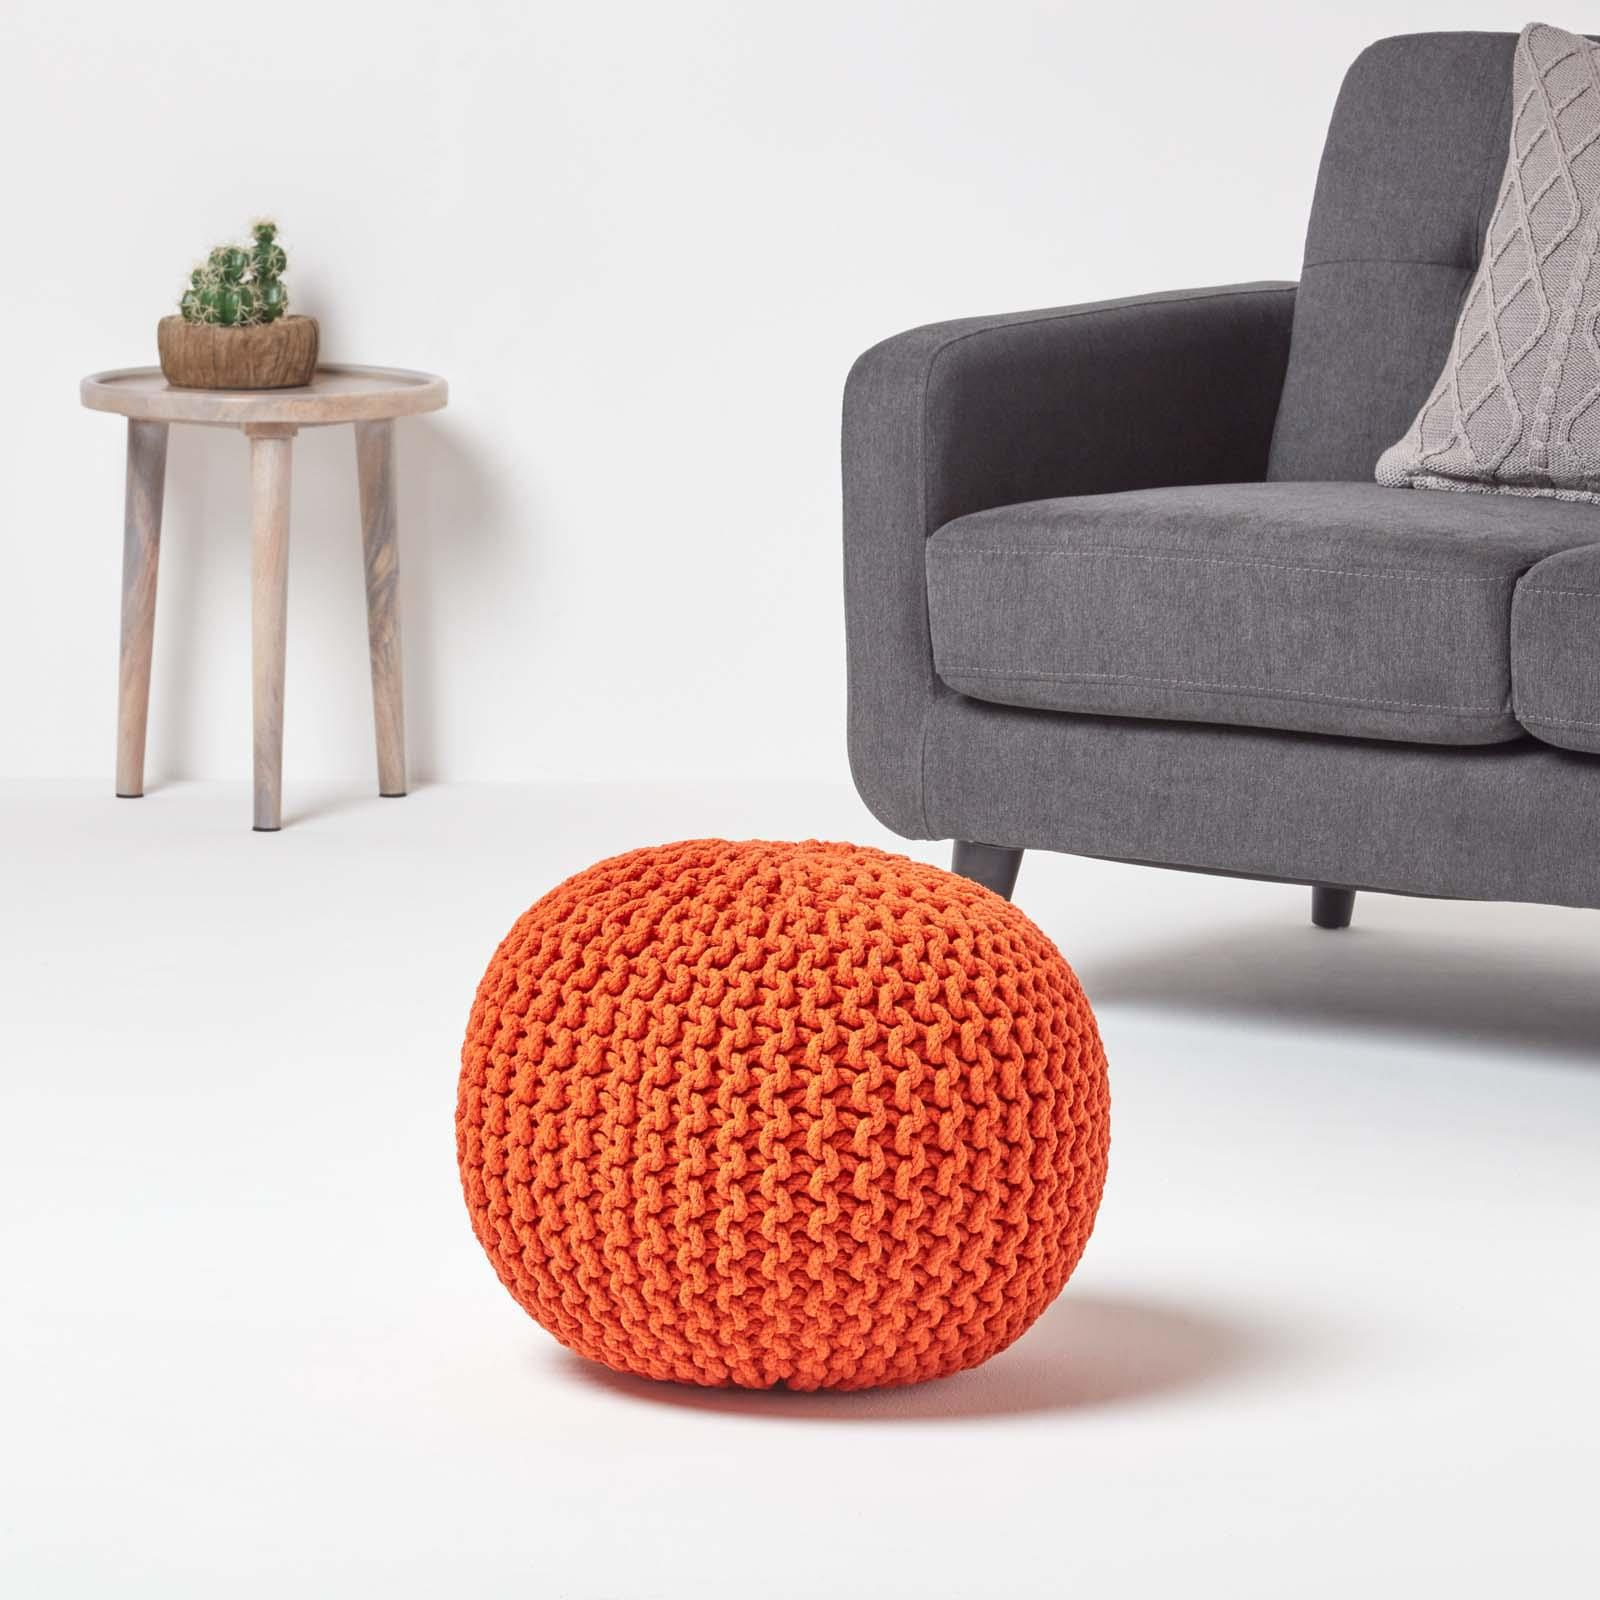 Hand-Knitted-100-Cotton-Pouffes-Round-Sphere-Or-Cube-Square-Chunky-Footstools thumbnail 117